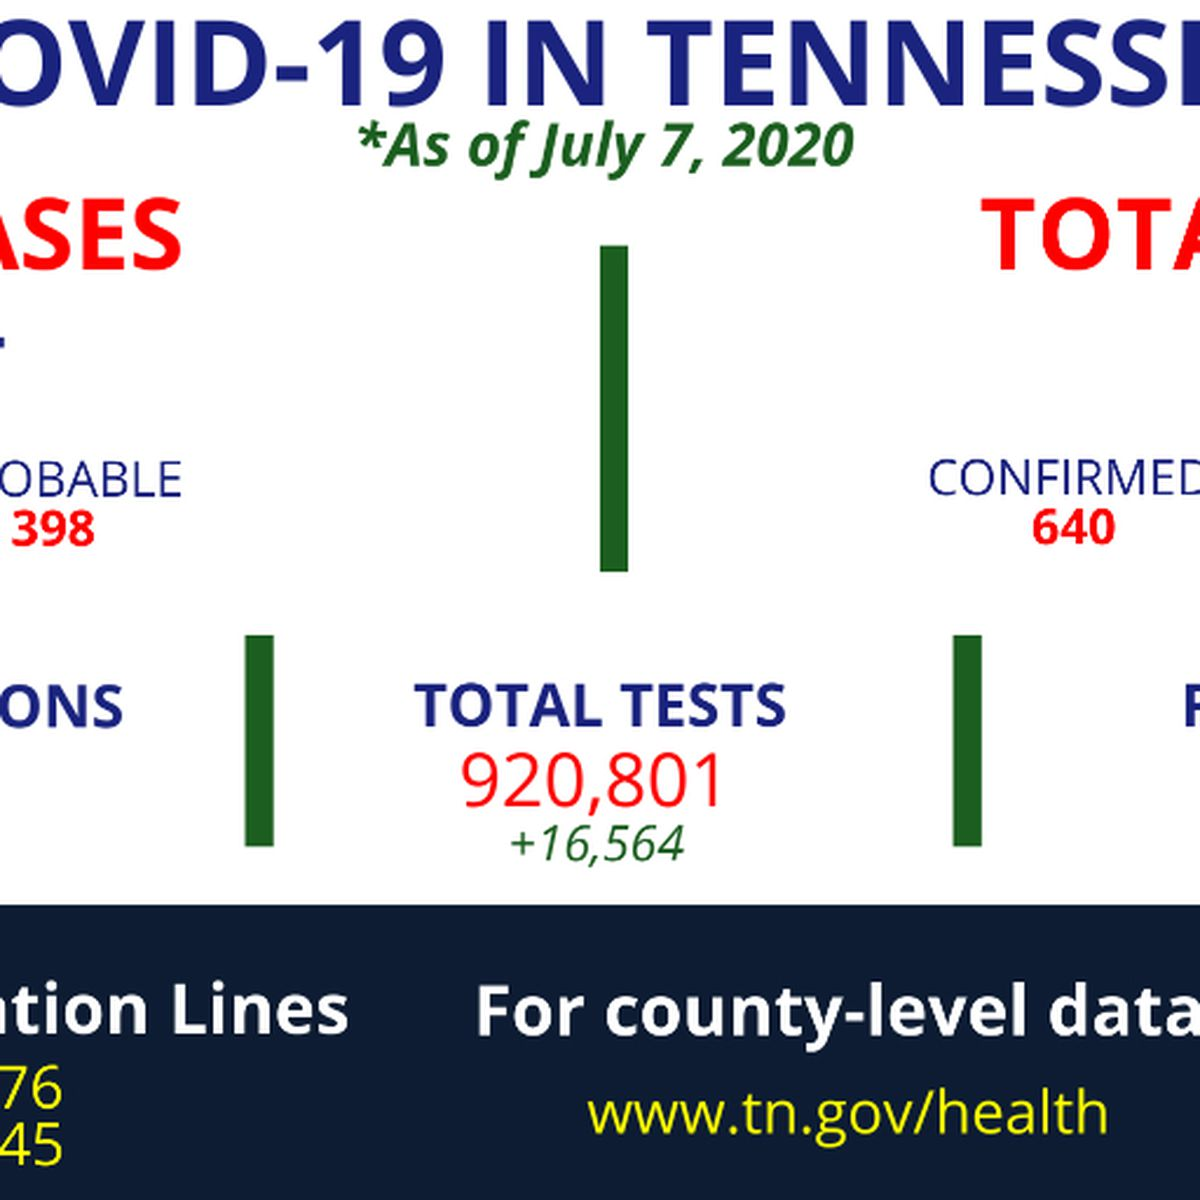 TDH reports more than 1,300 new COVID-19 cases; over 53,000 cases confirmed statewide